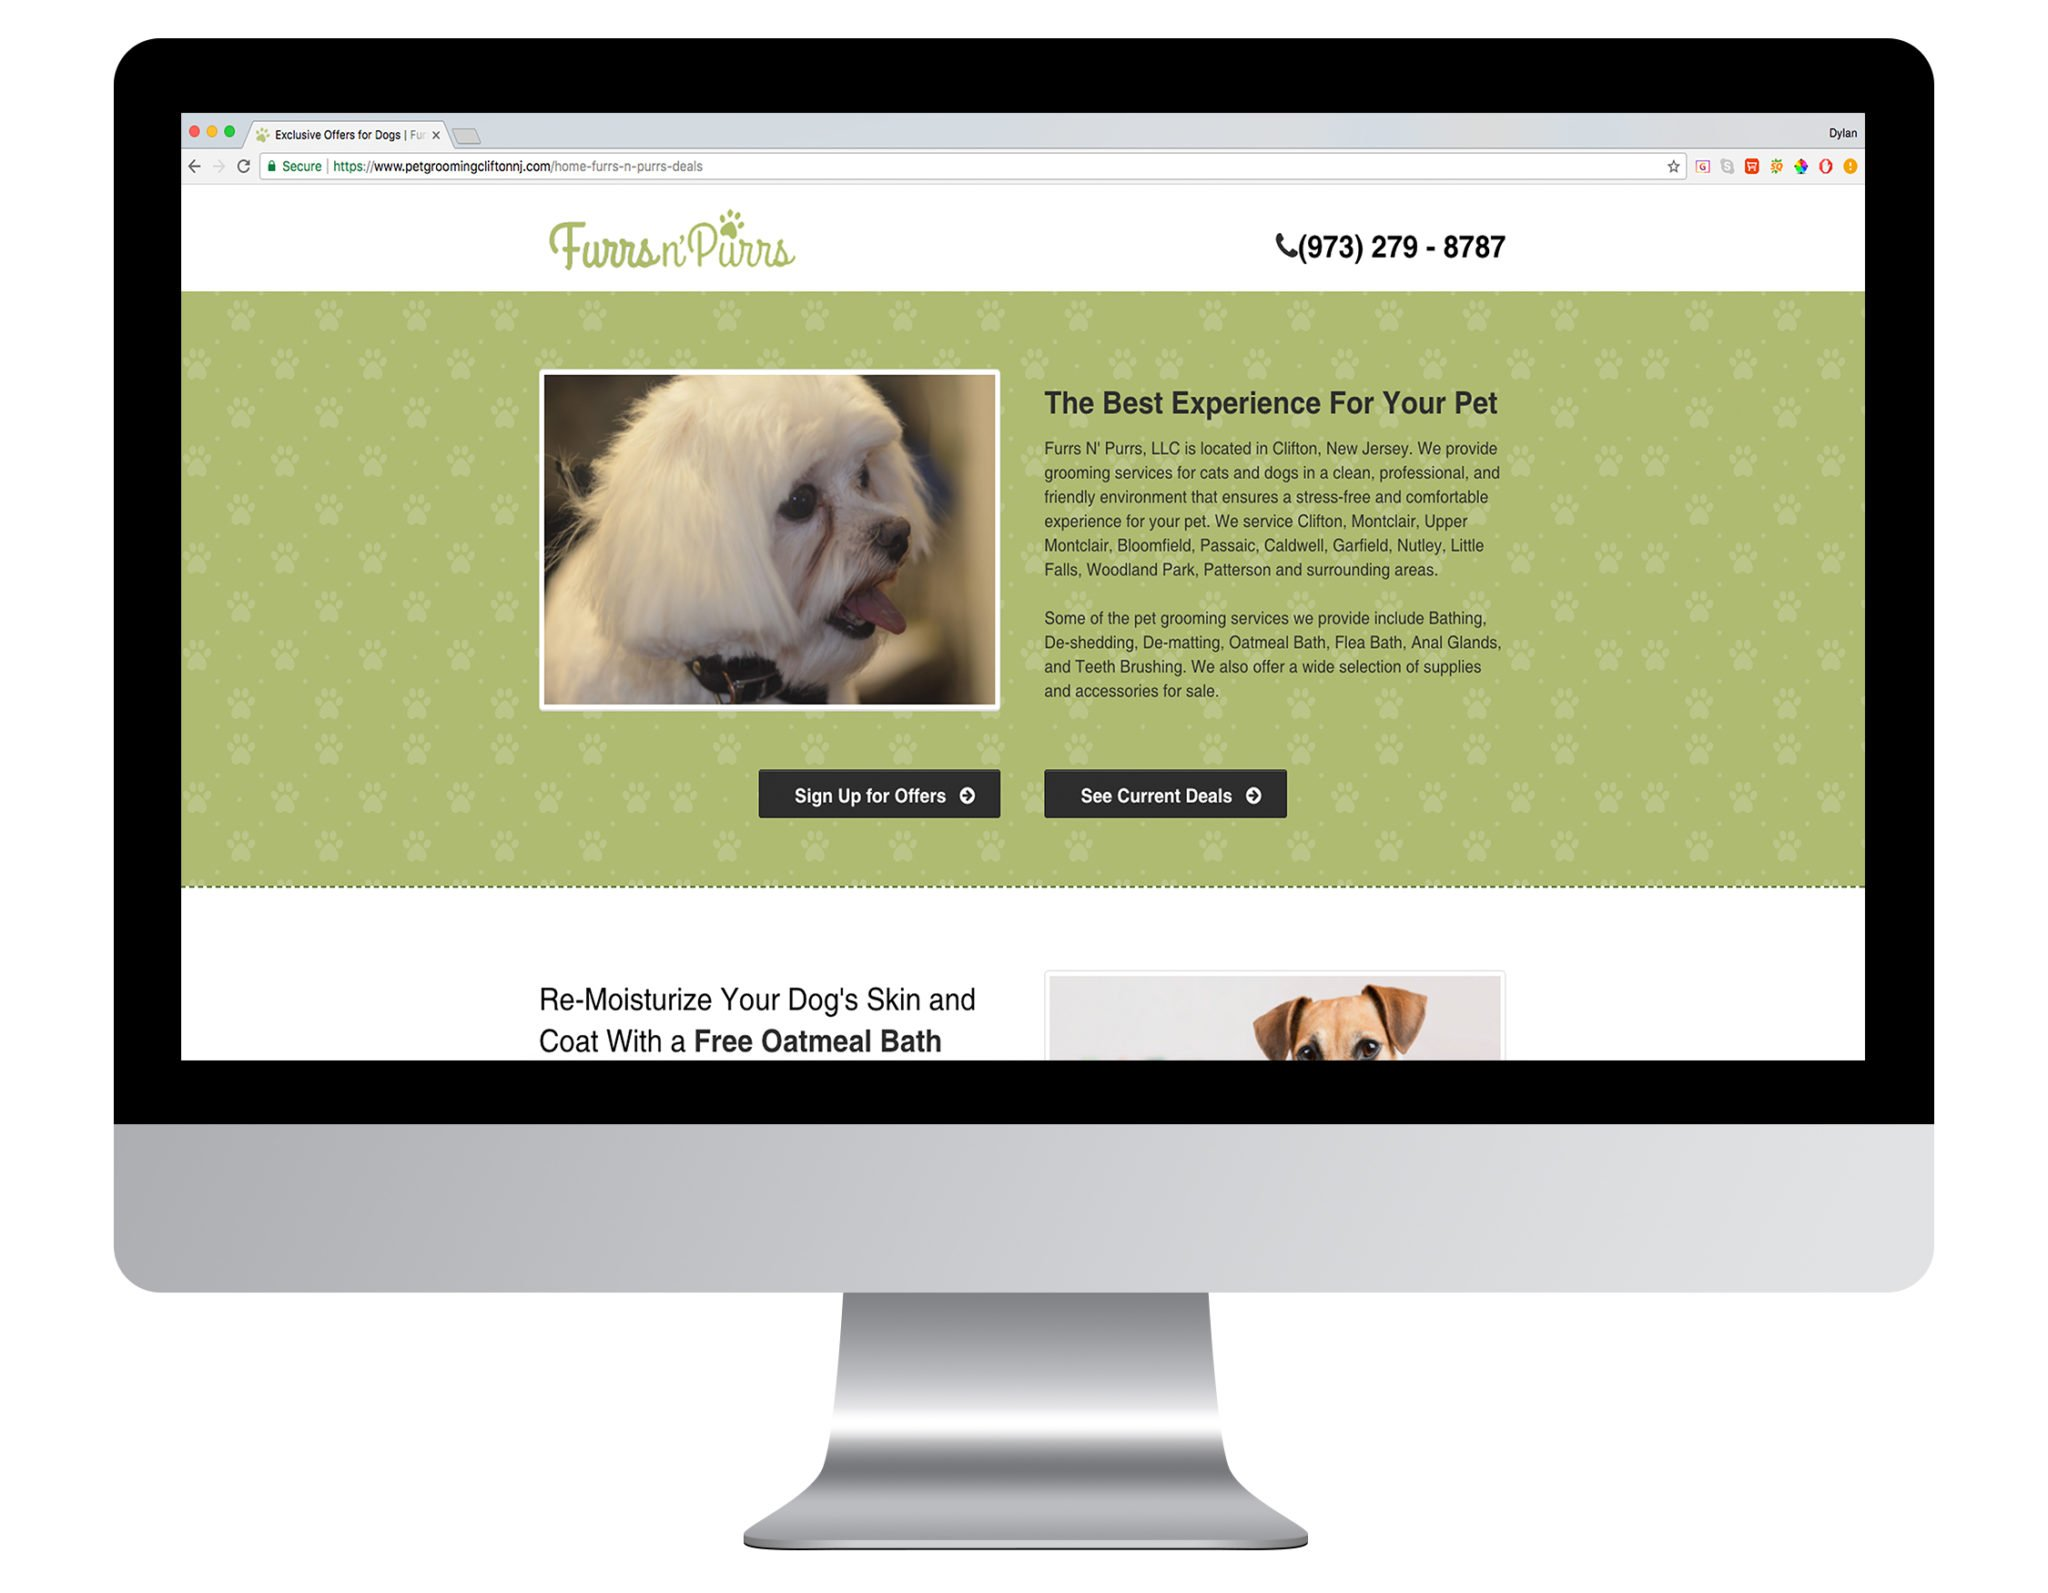 Web Design Portfolio Sample - Furrs N' Purrs